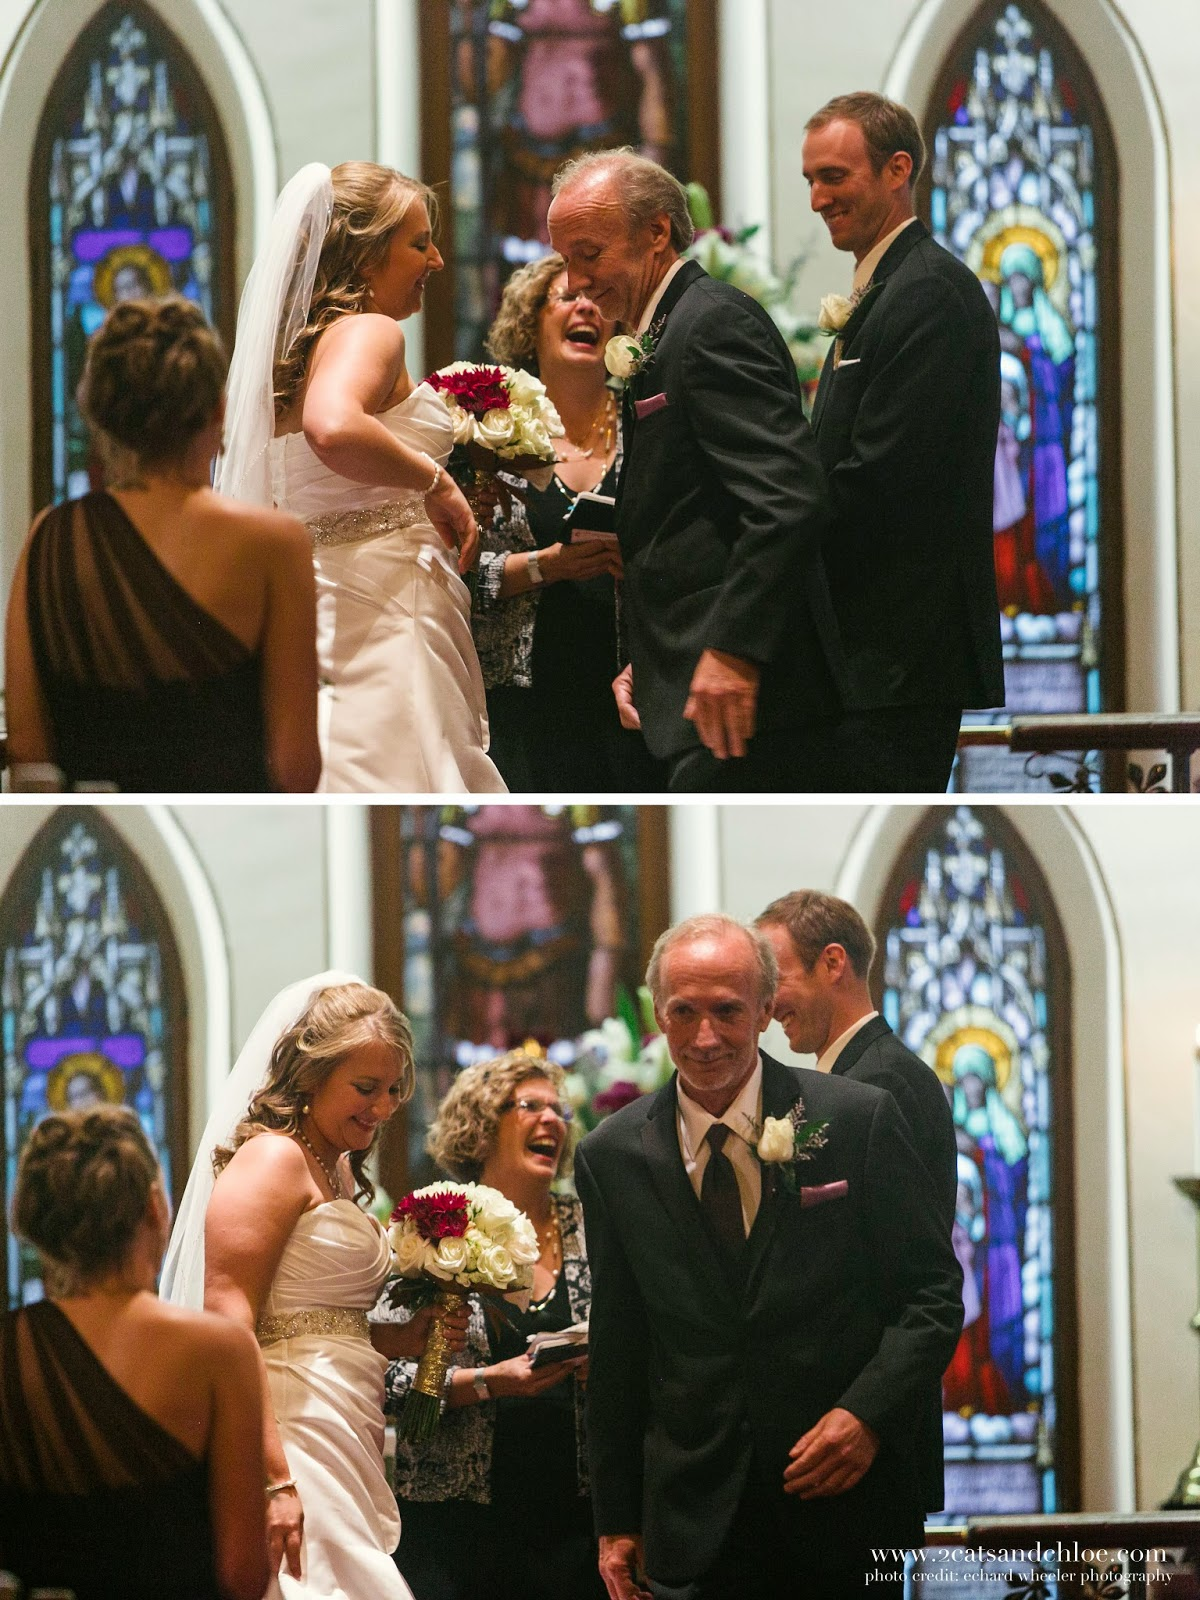 Funny wedding ceremony moments